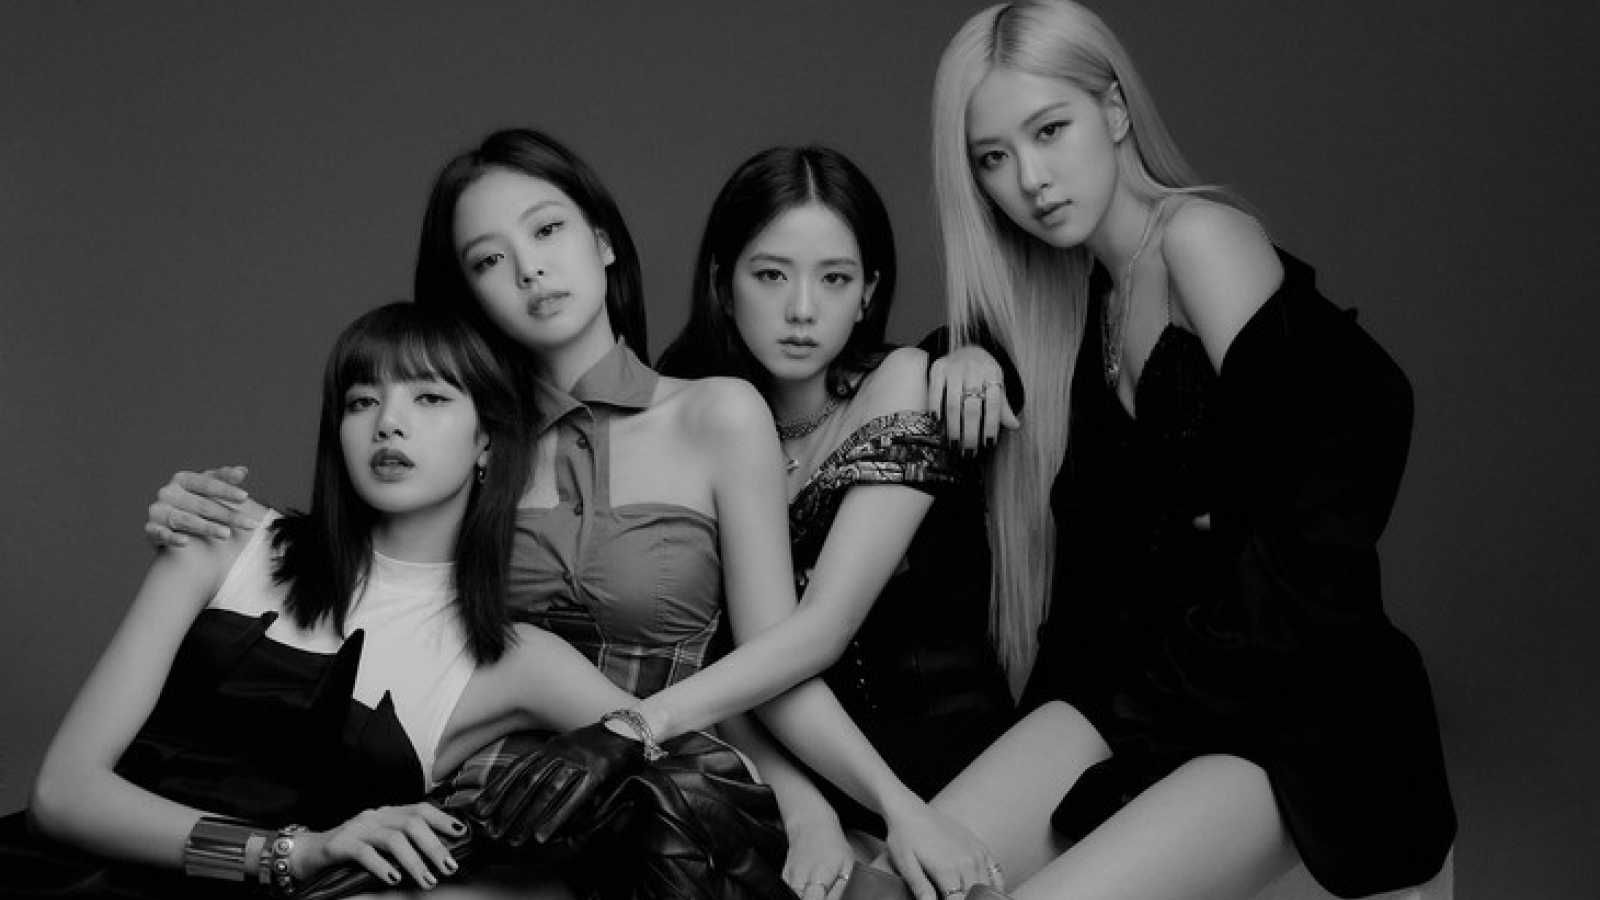 BLACKPINK © YG Entertainment. All rights reserved